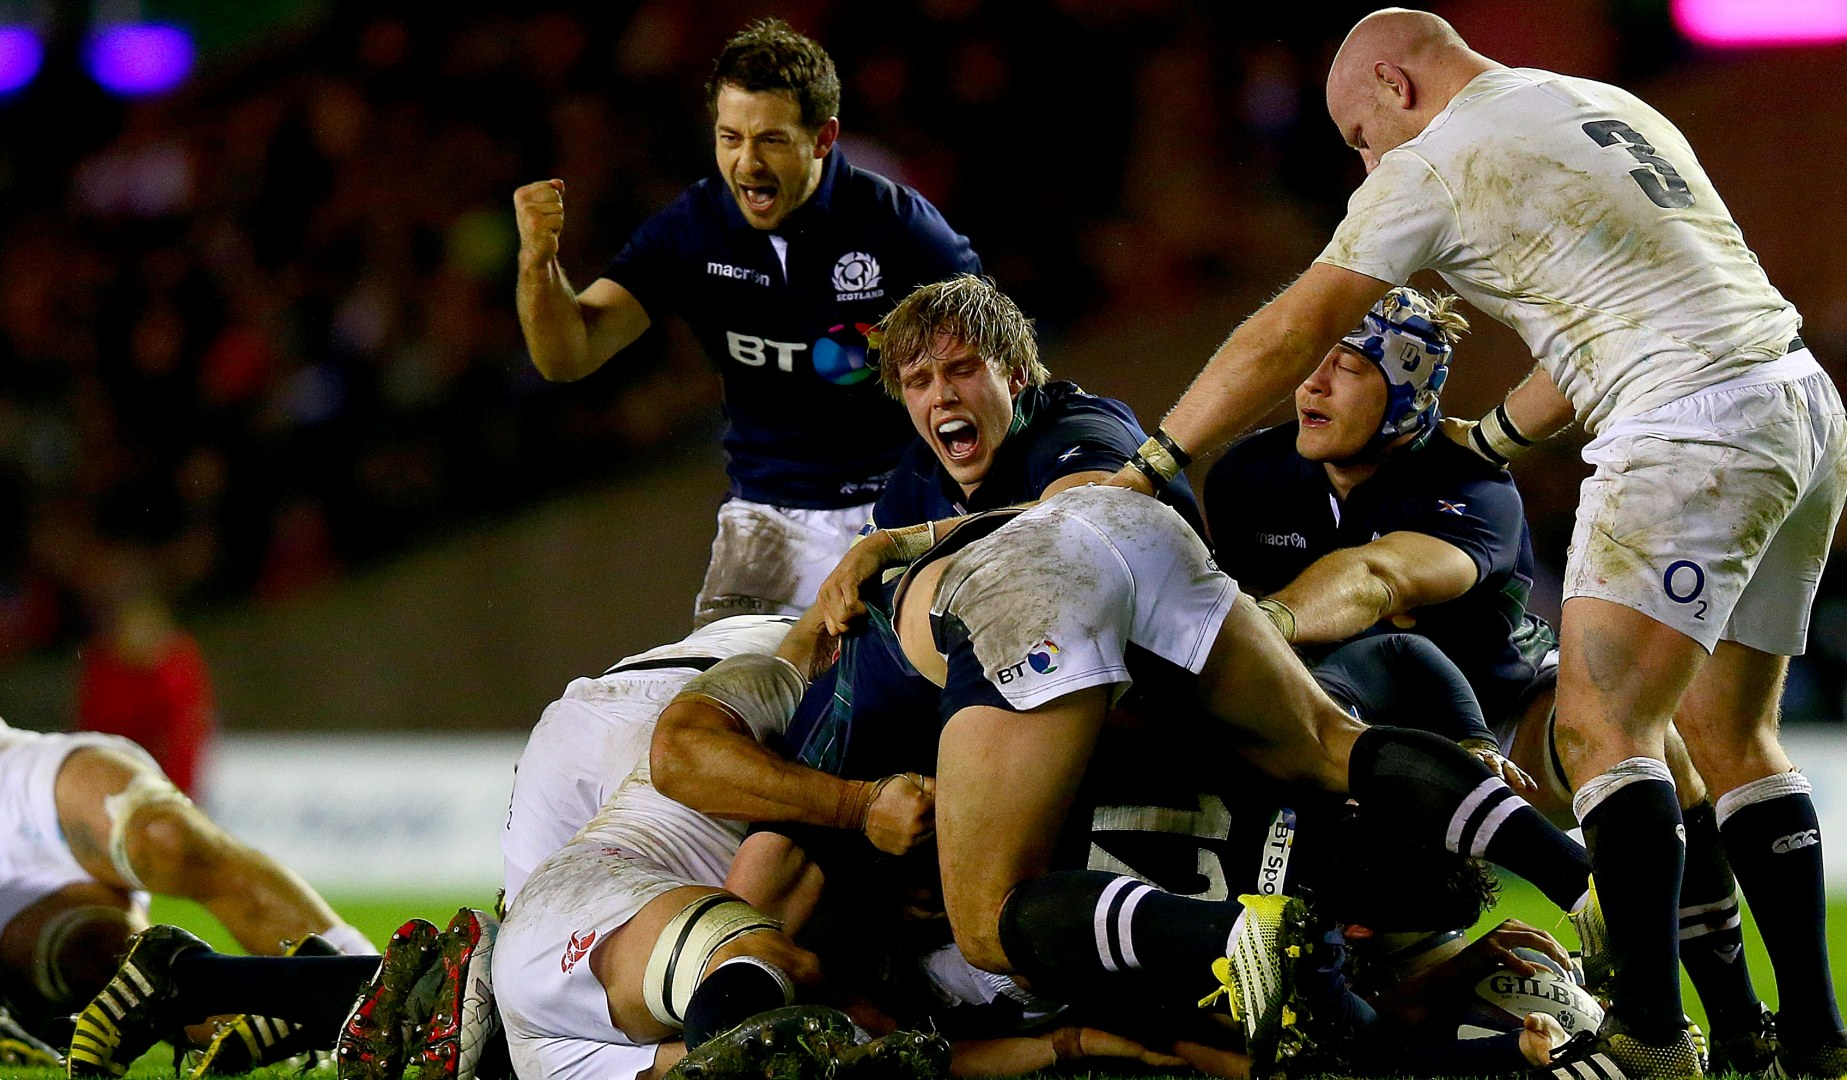 Home nation rivalries to the fore on Six Nations opening weekend